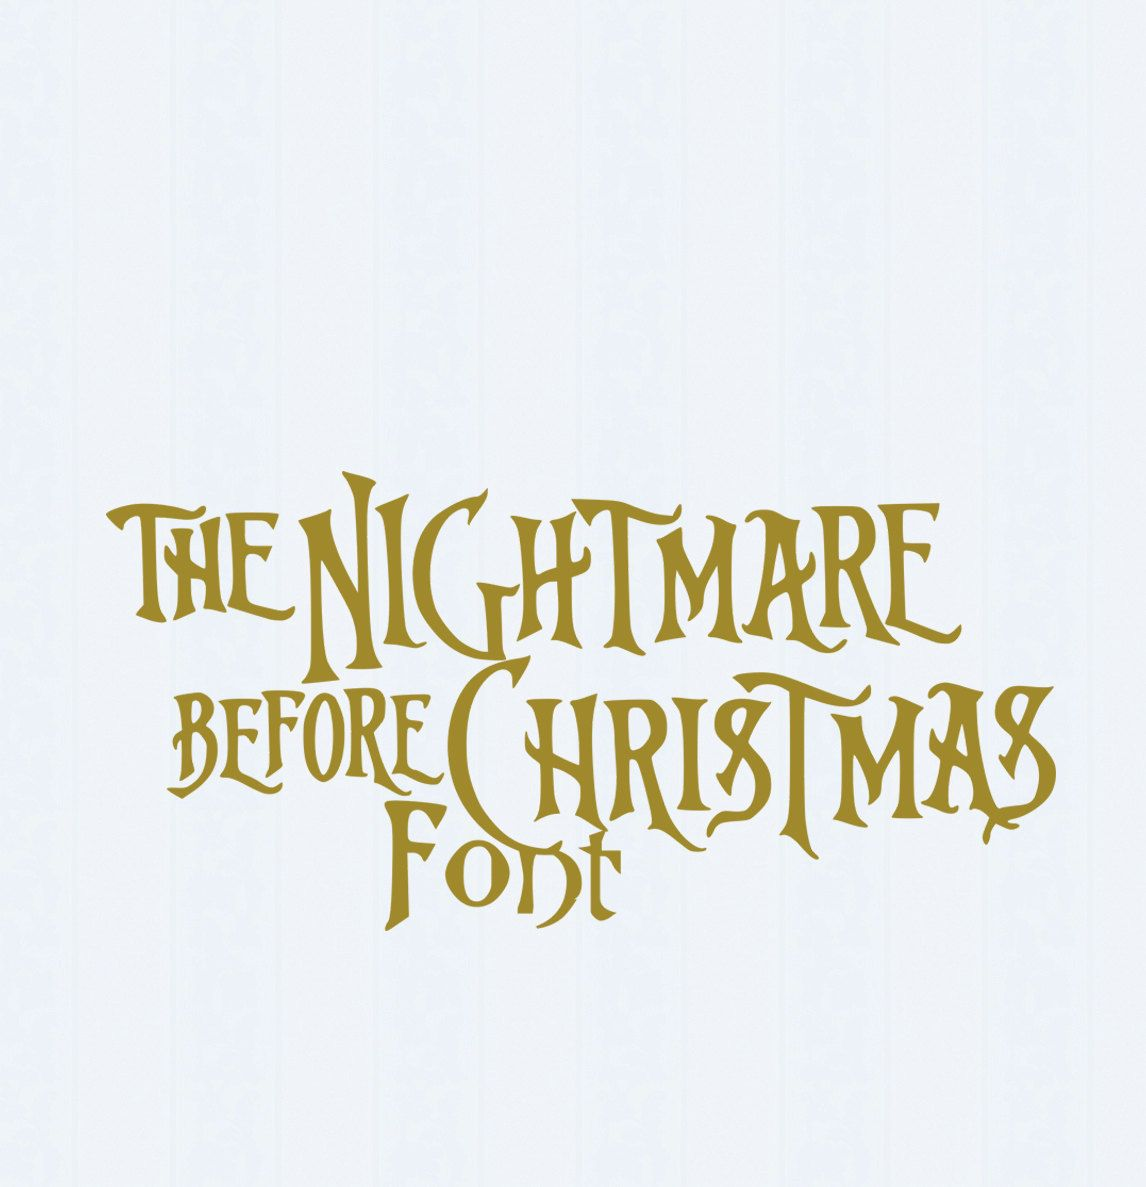 Nightmare before Christmas SVG Font, Digital Alphabet, SVG Letters ...